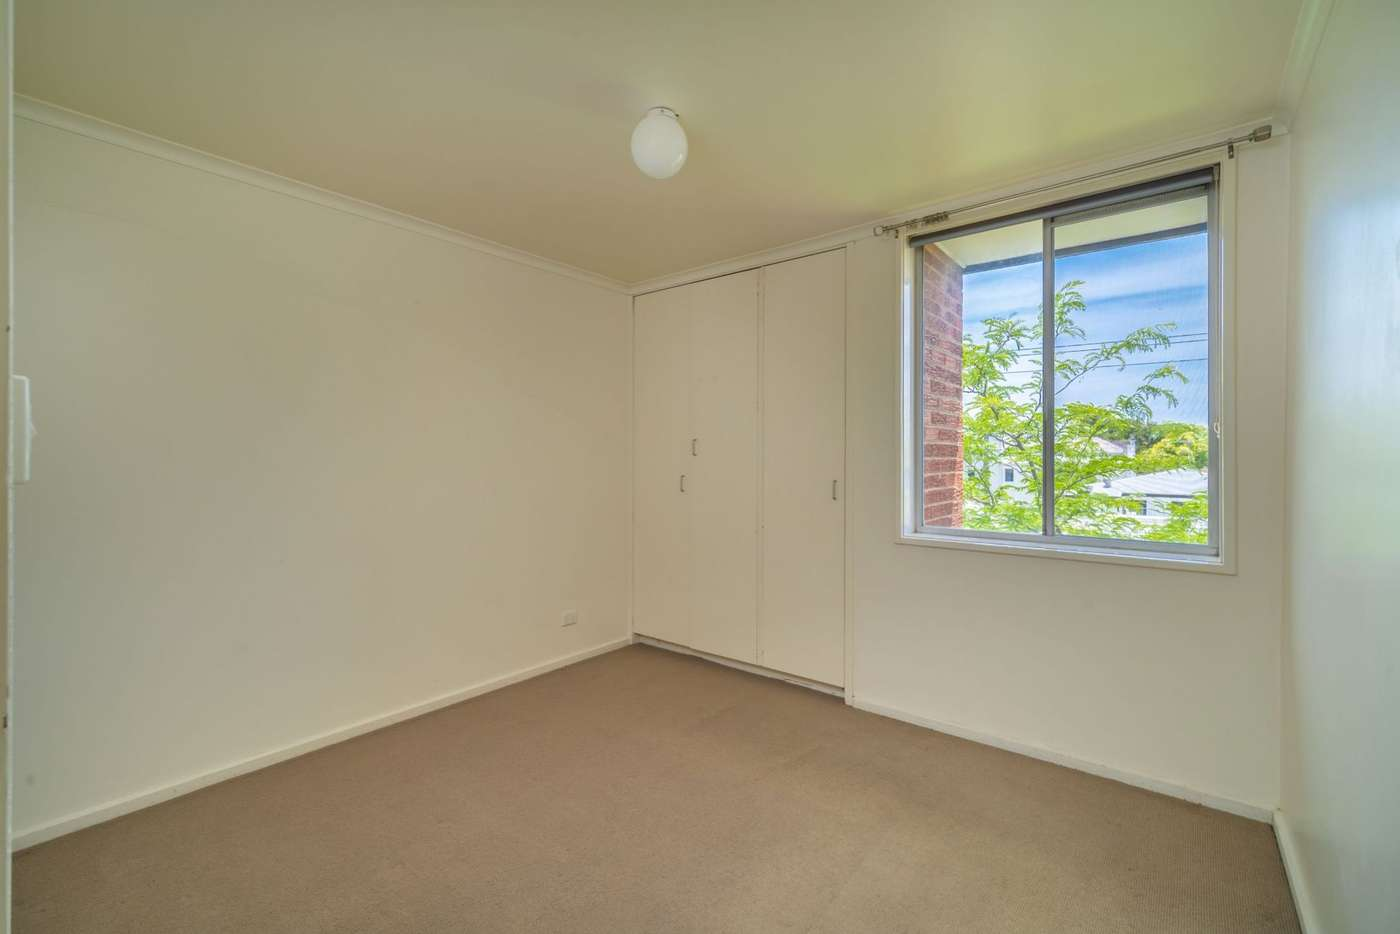 Sixth view of Homely apartment listing, 15/334 Princes Street, Port Melbourne VIC 3207